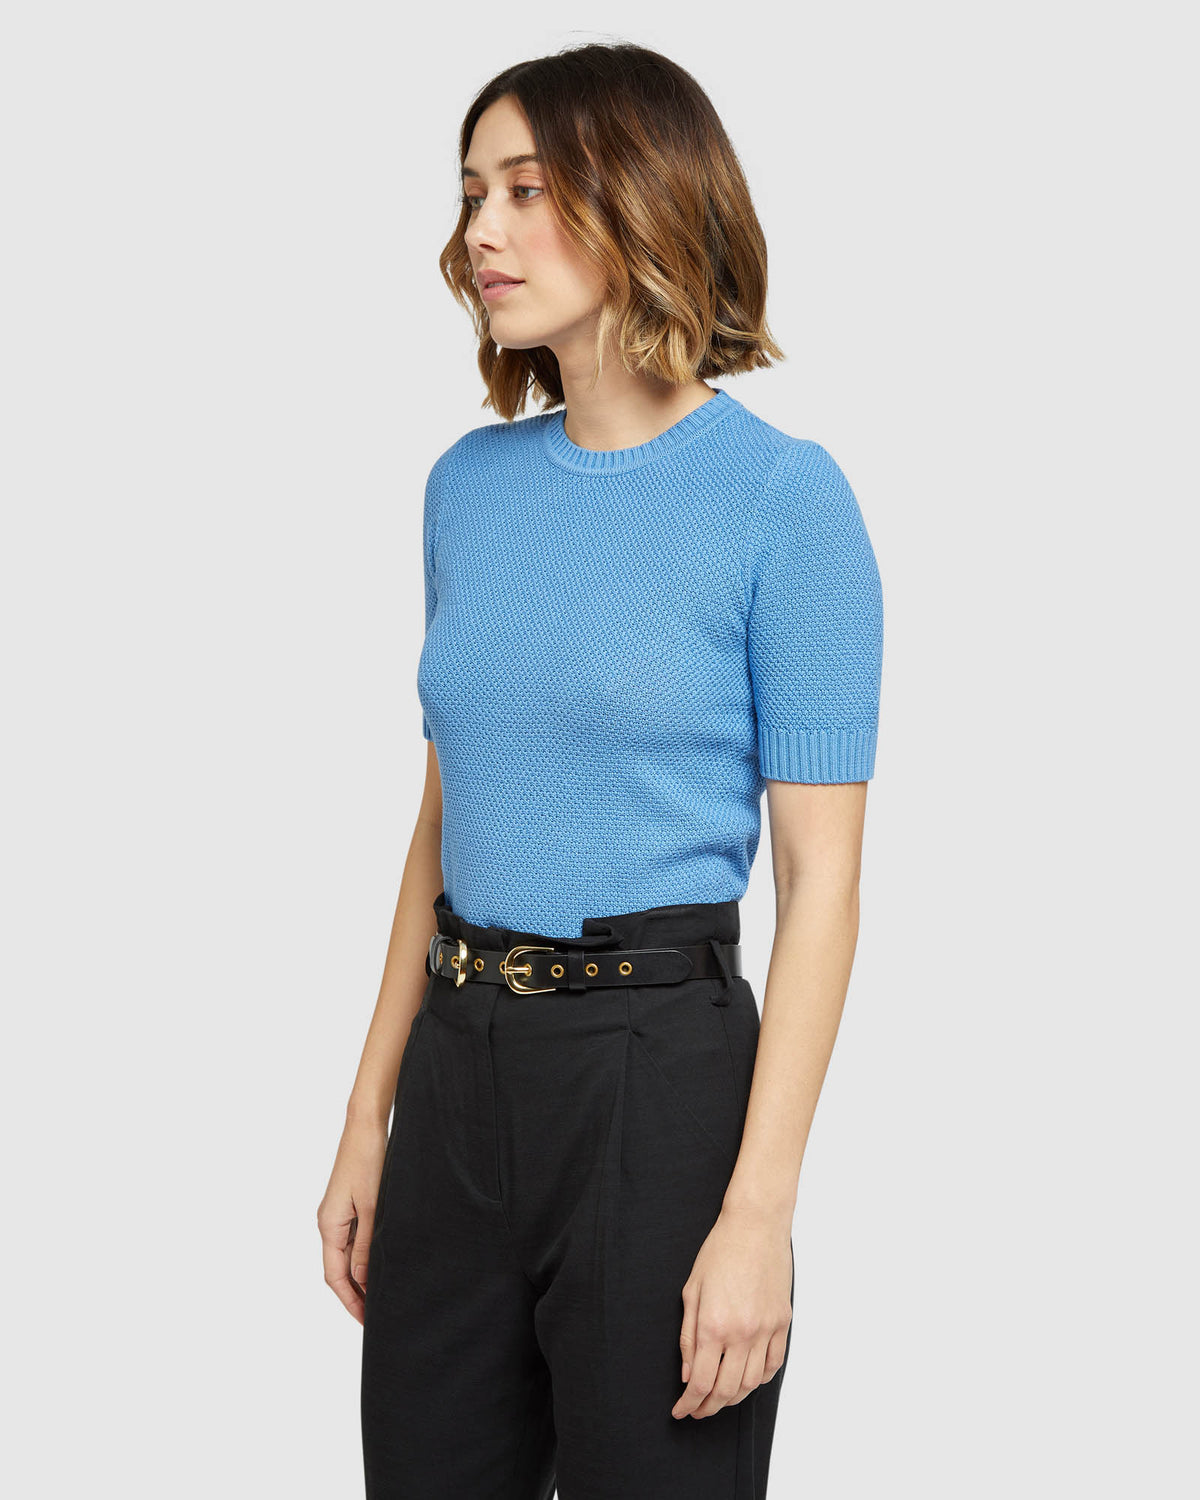 LUPA TEXTURED SHORT SLEEVE KNIT